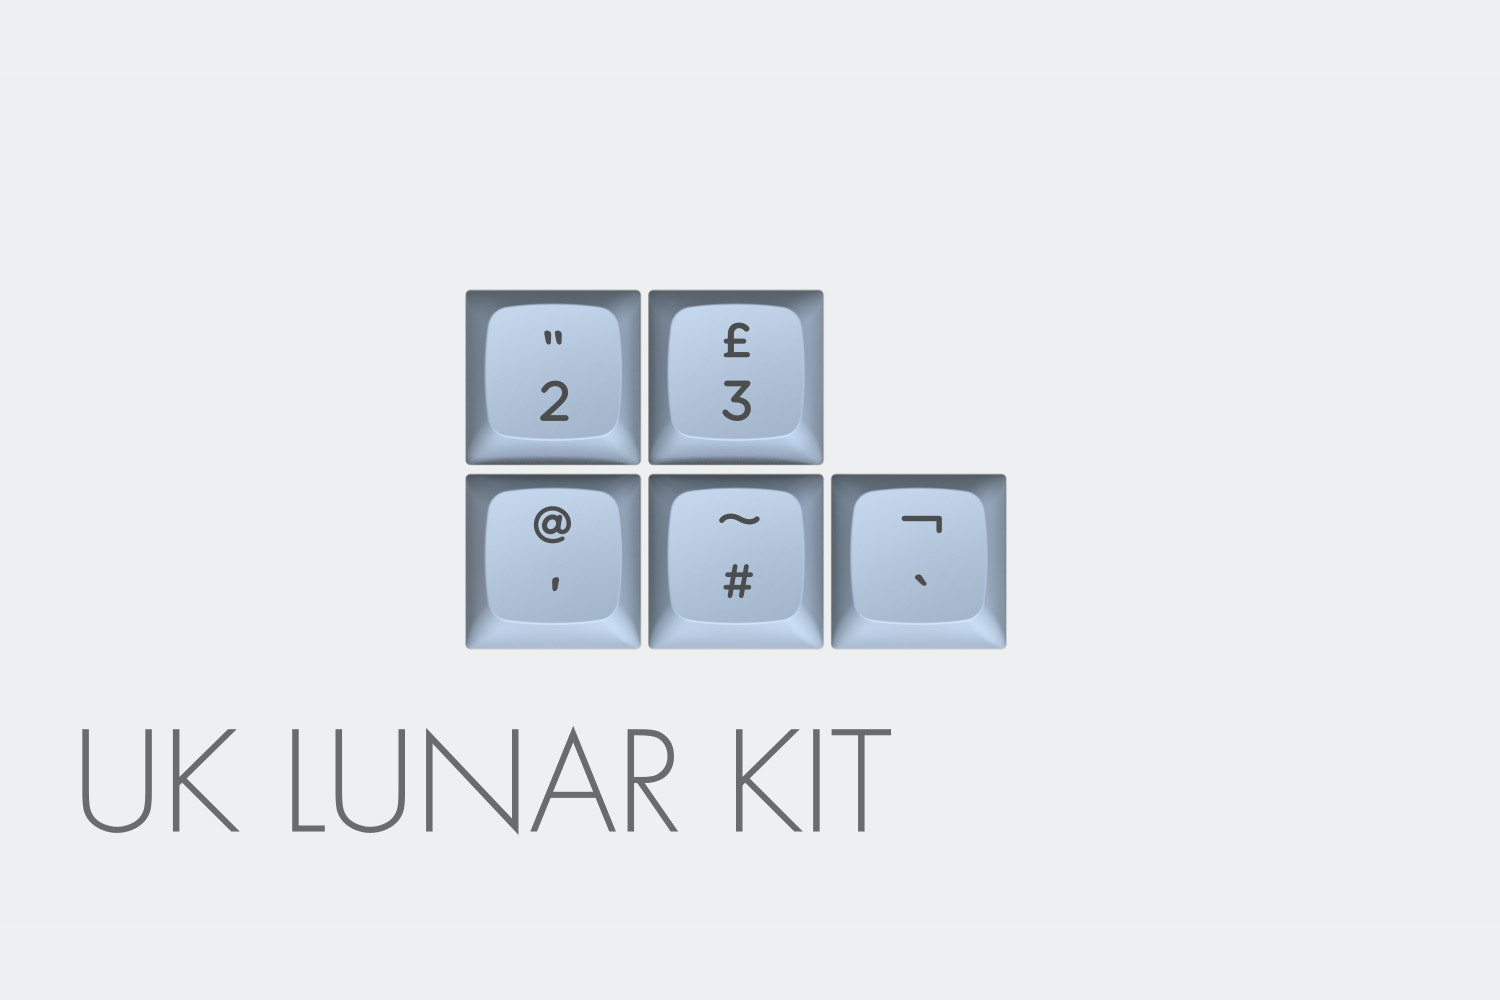 UK Lunar Kit - $9.99